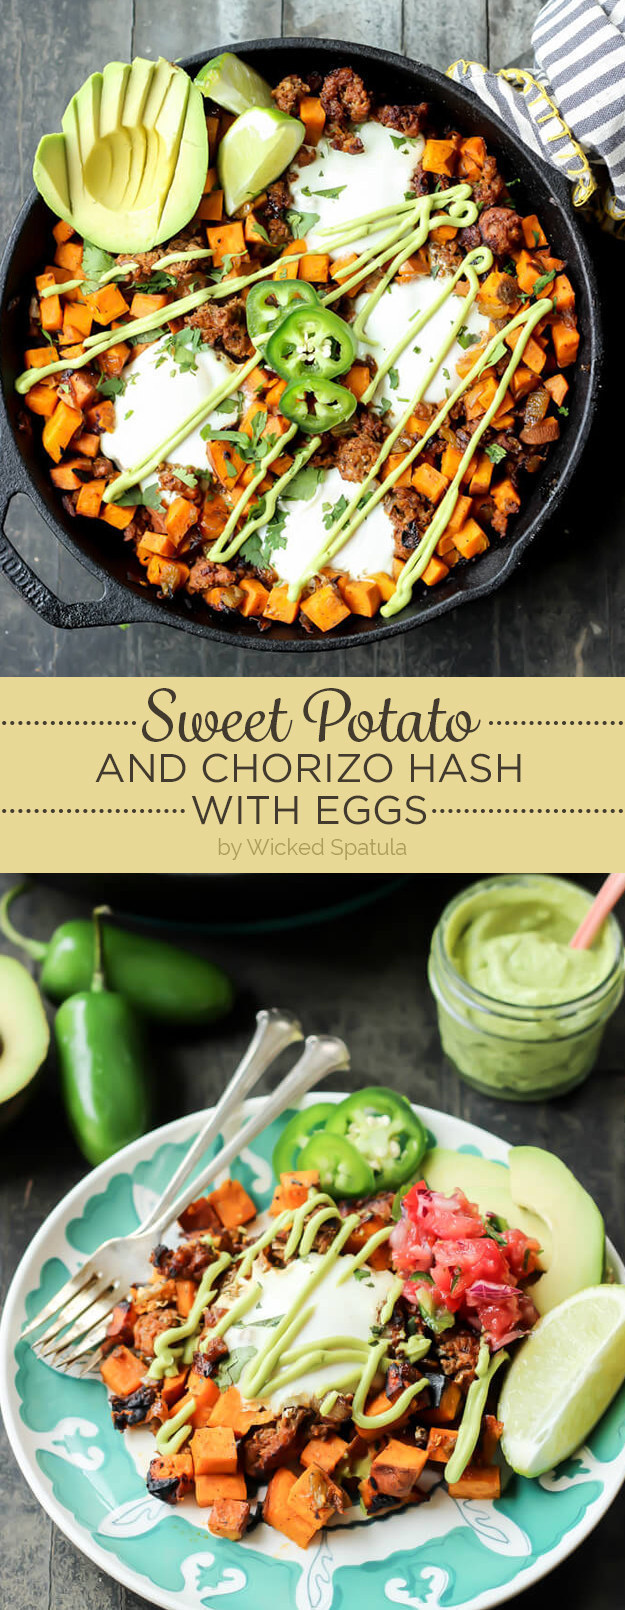 Sweet Potato and Chorizo Hash with Eggs